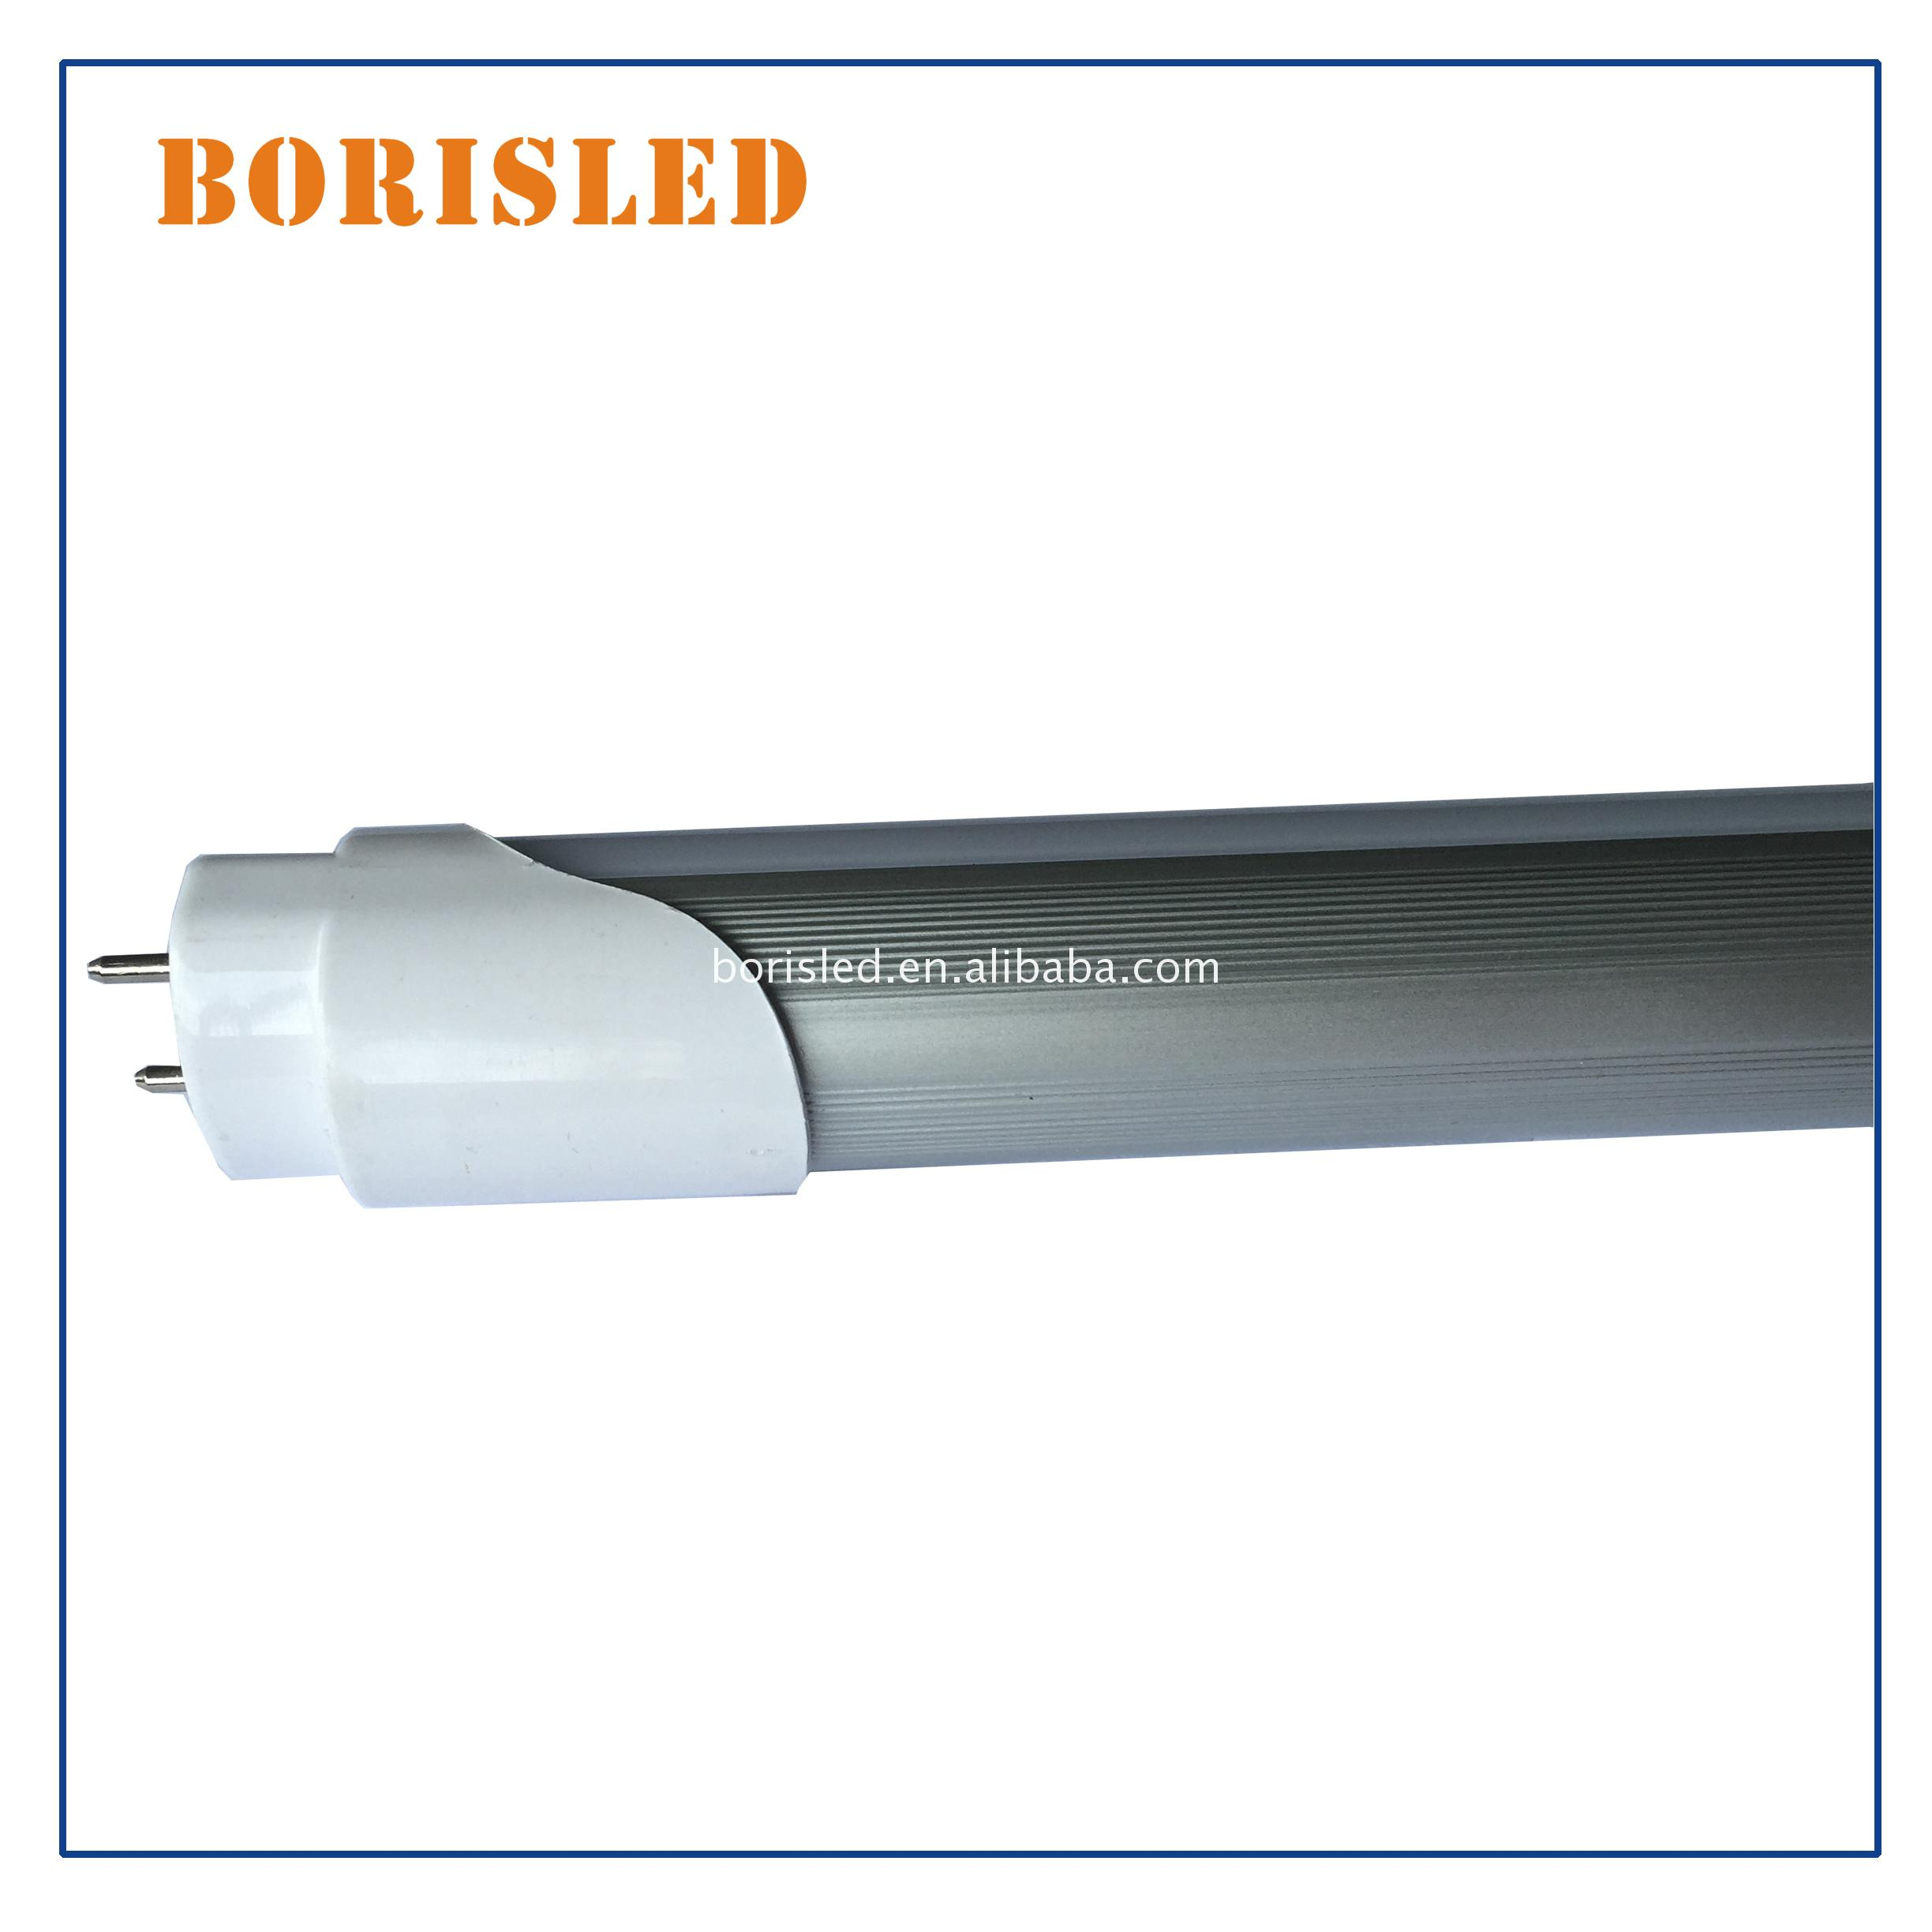 high efficiency japan t8 jizz led tube light on alibaba.com with Quality Assurance